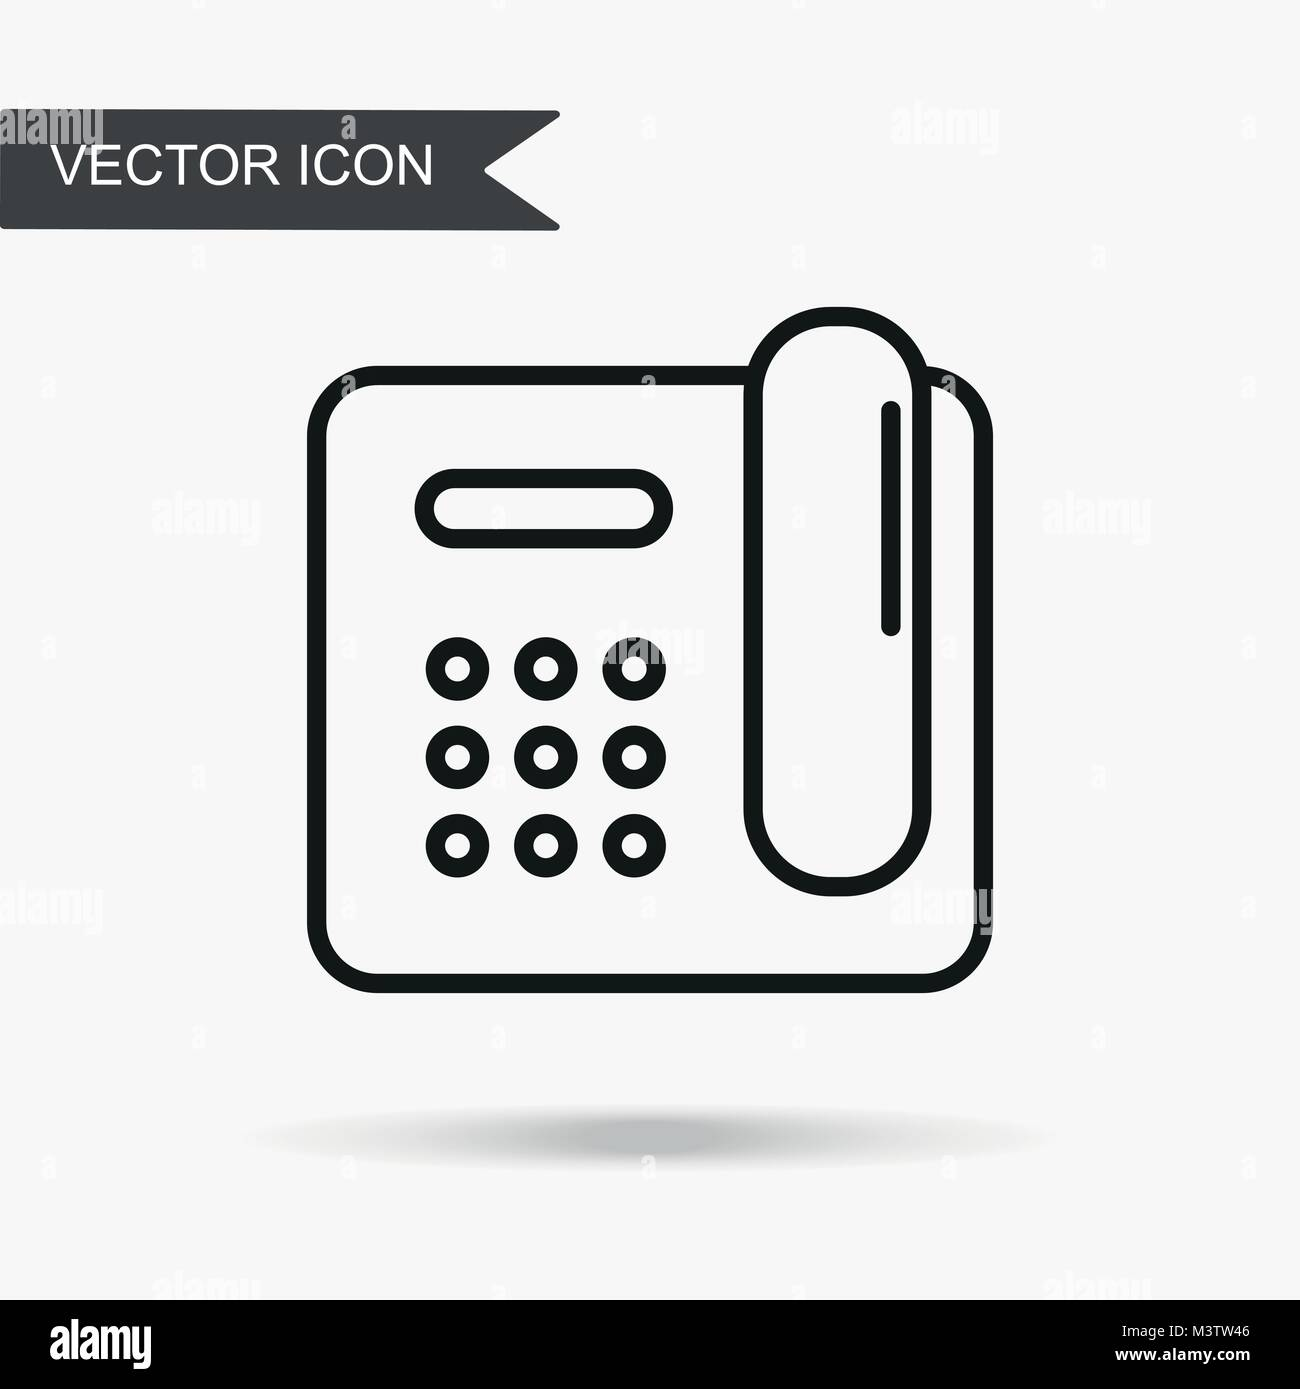 Wired Phone Vector Stock Photos & Wired Phone Vector Stock Images ...